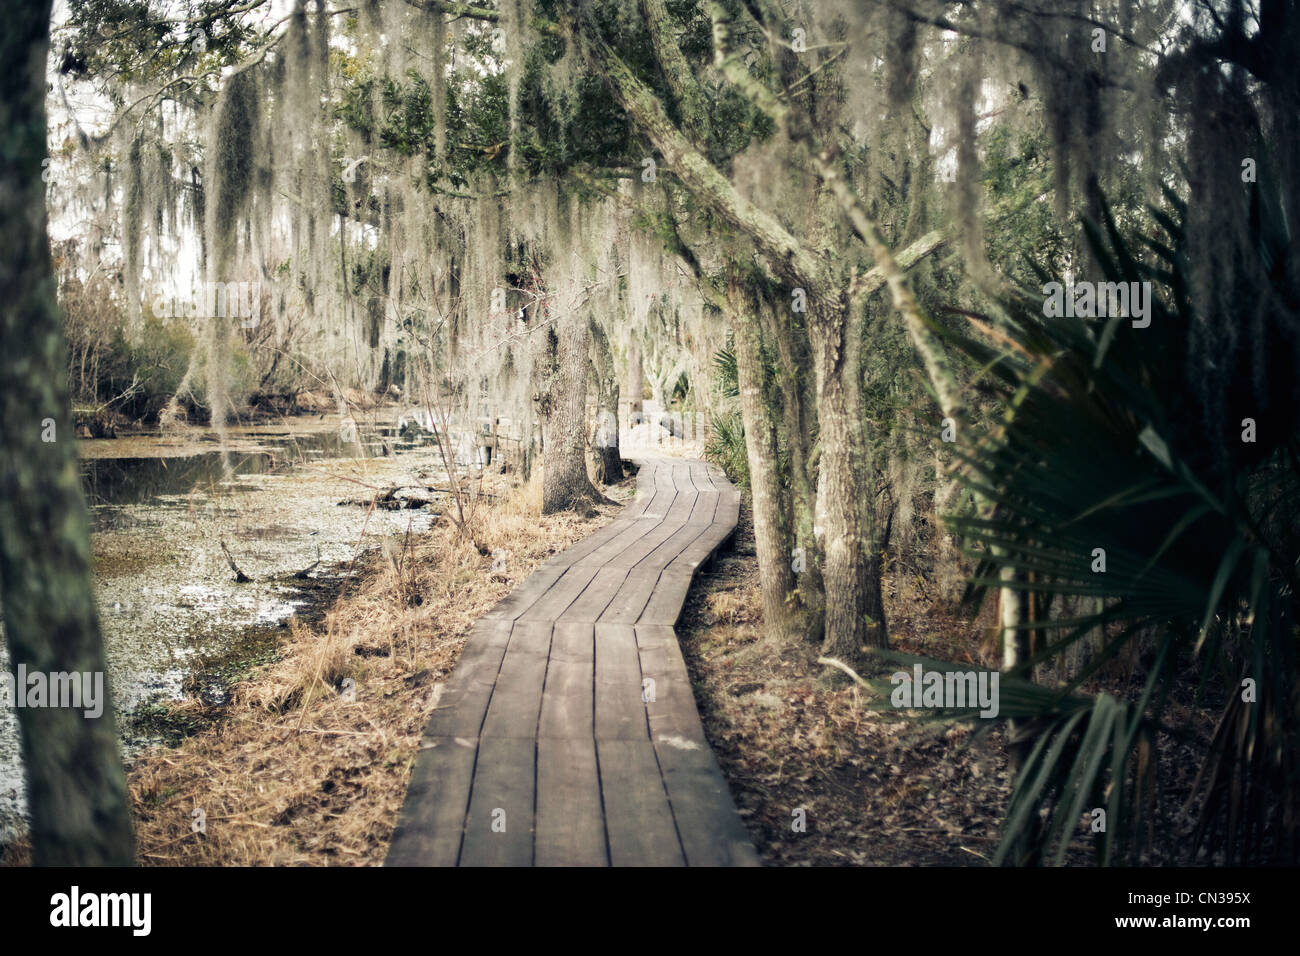 Walkway through swamp, New Orleans, Louisiana, USA - Stock Image